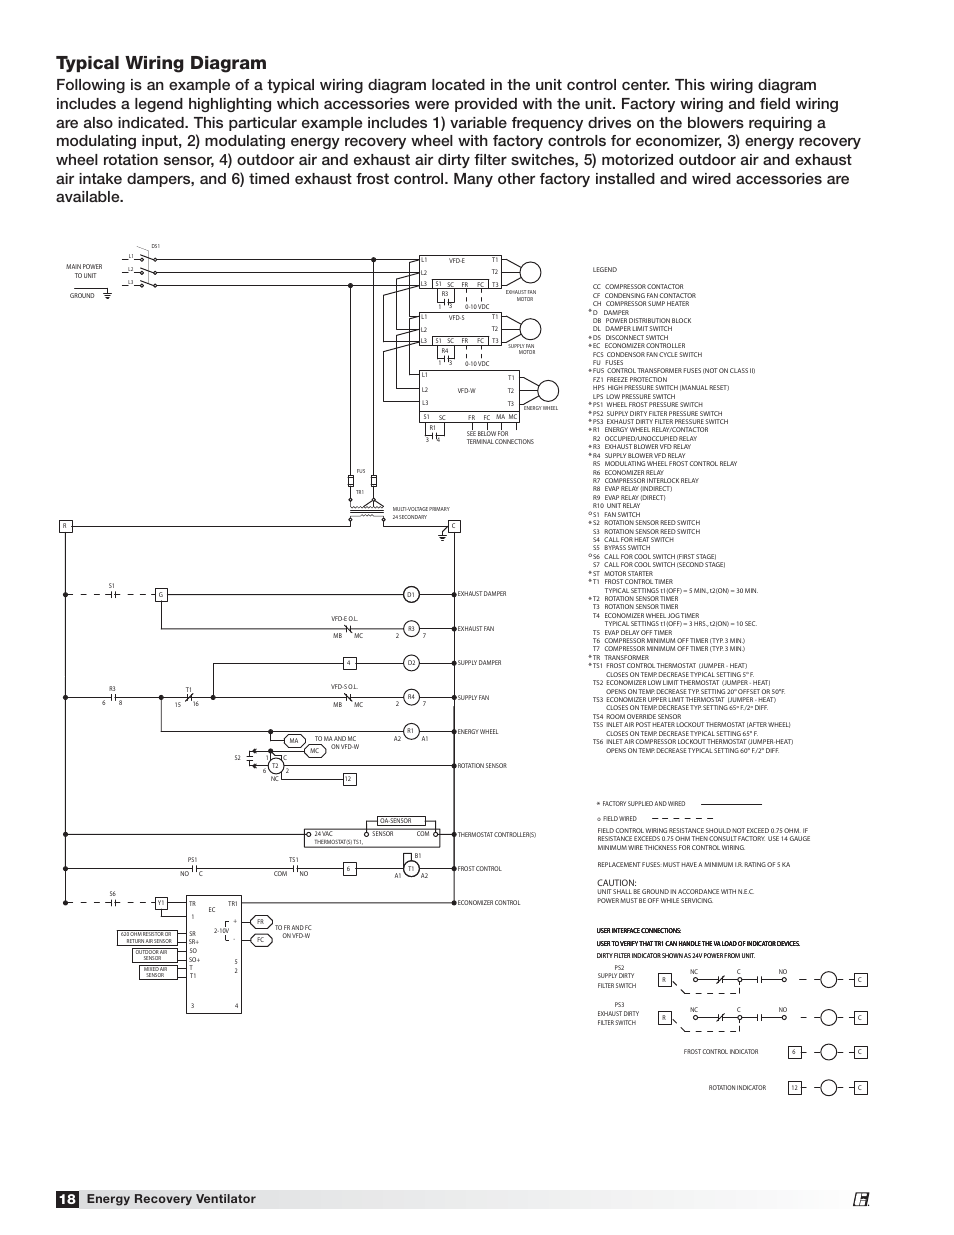 Typical wiring diagram Energy recovery ventilator Greenheck Fan